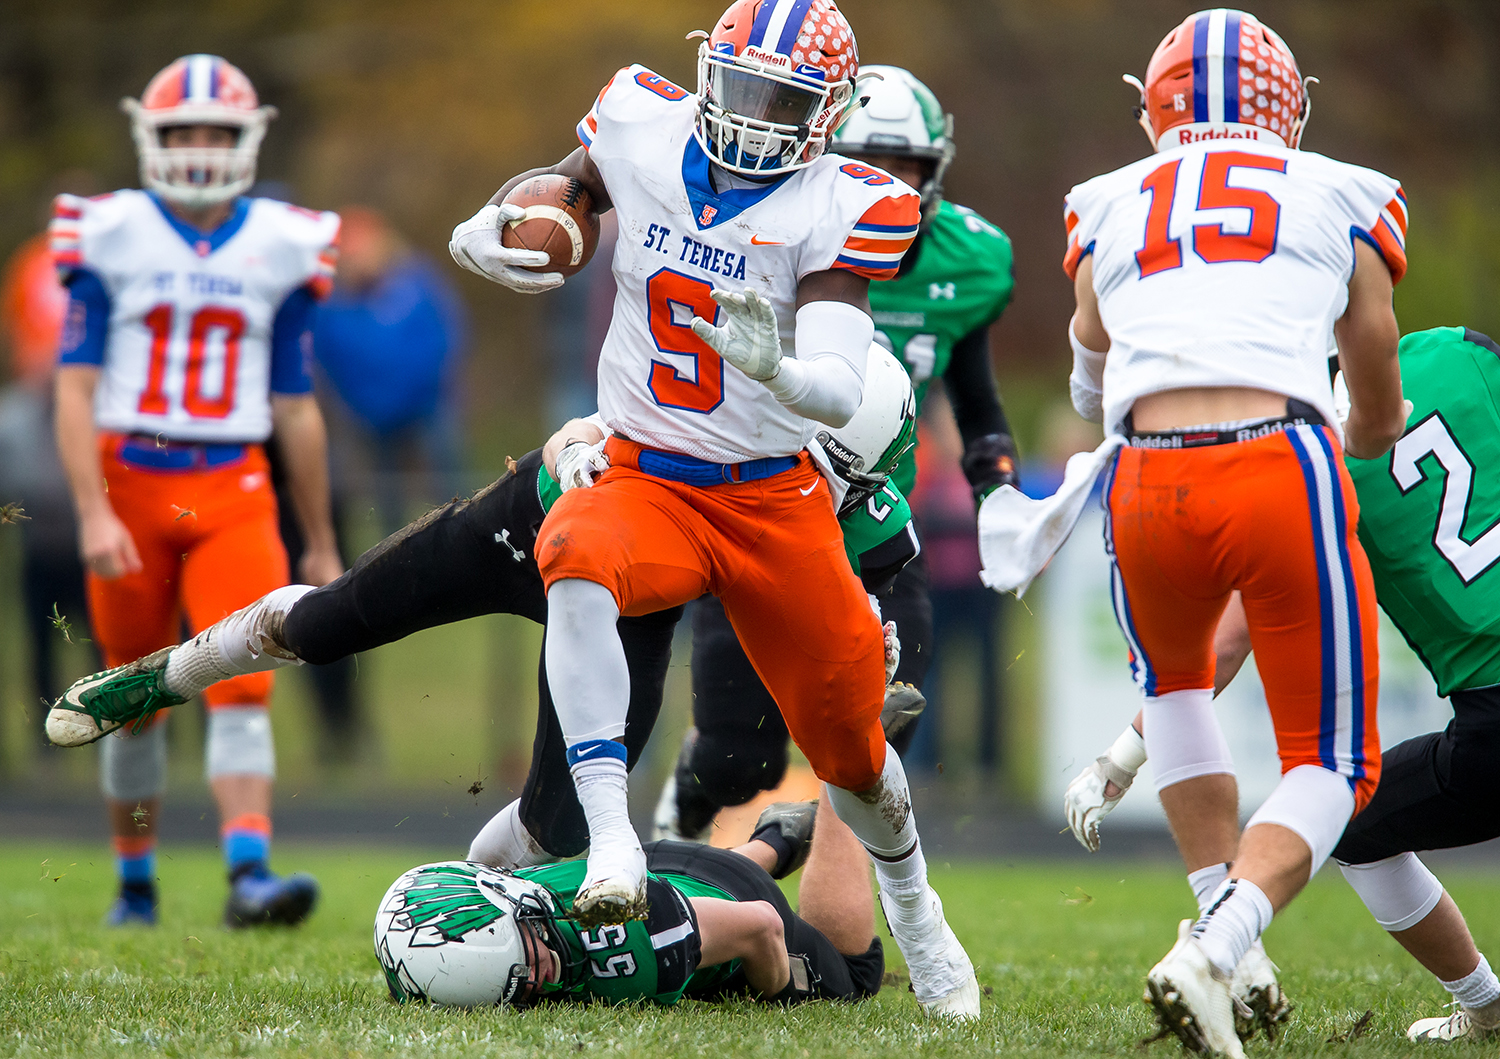 Decatur St. Teresa's Jacardia Wright (9) bursts through a tackle from Athens' Everett Shuck (55) on a rush in the first half in the second round of the Class 2A playoffs at Athens High School, Saturday, Nov. 3, 2018, in Athens, Ill. [Justin L. Fowler/The State Journal-Register]